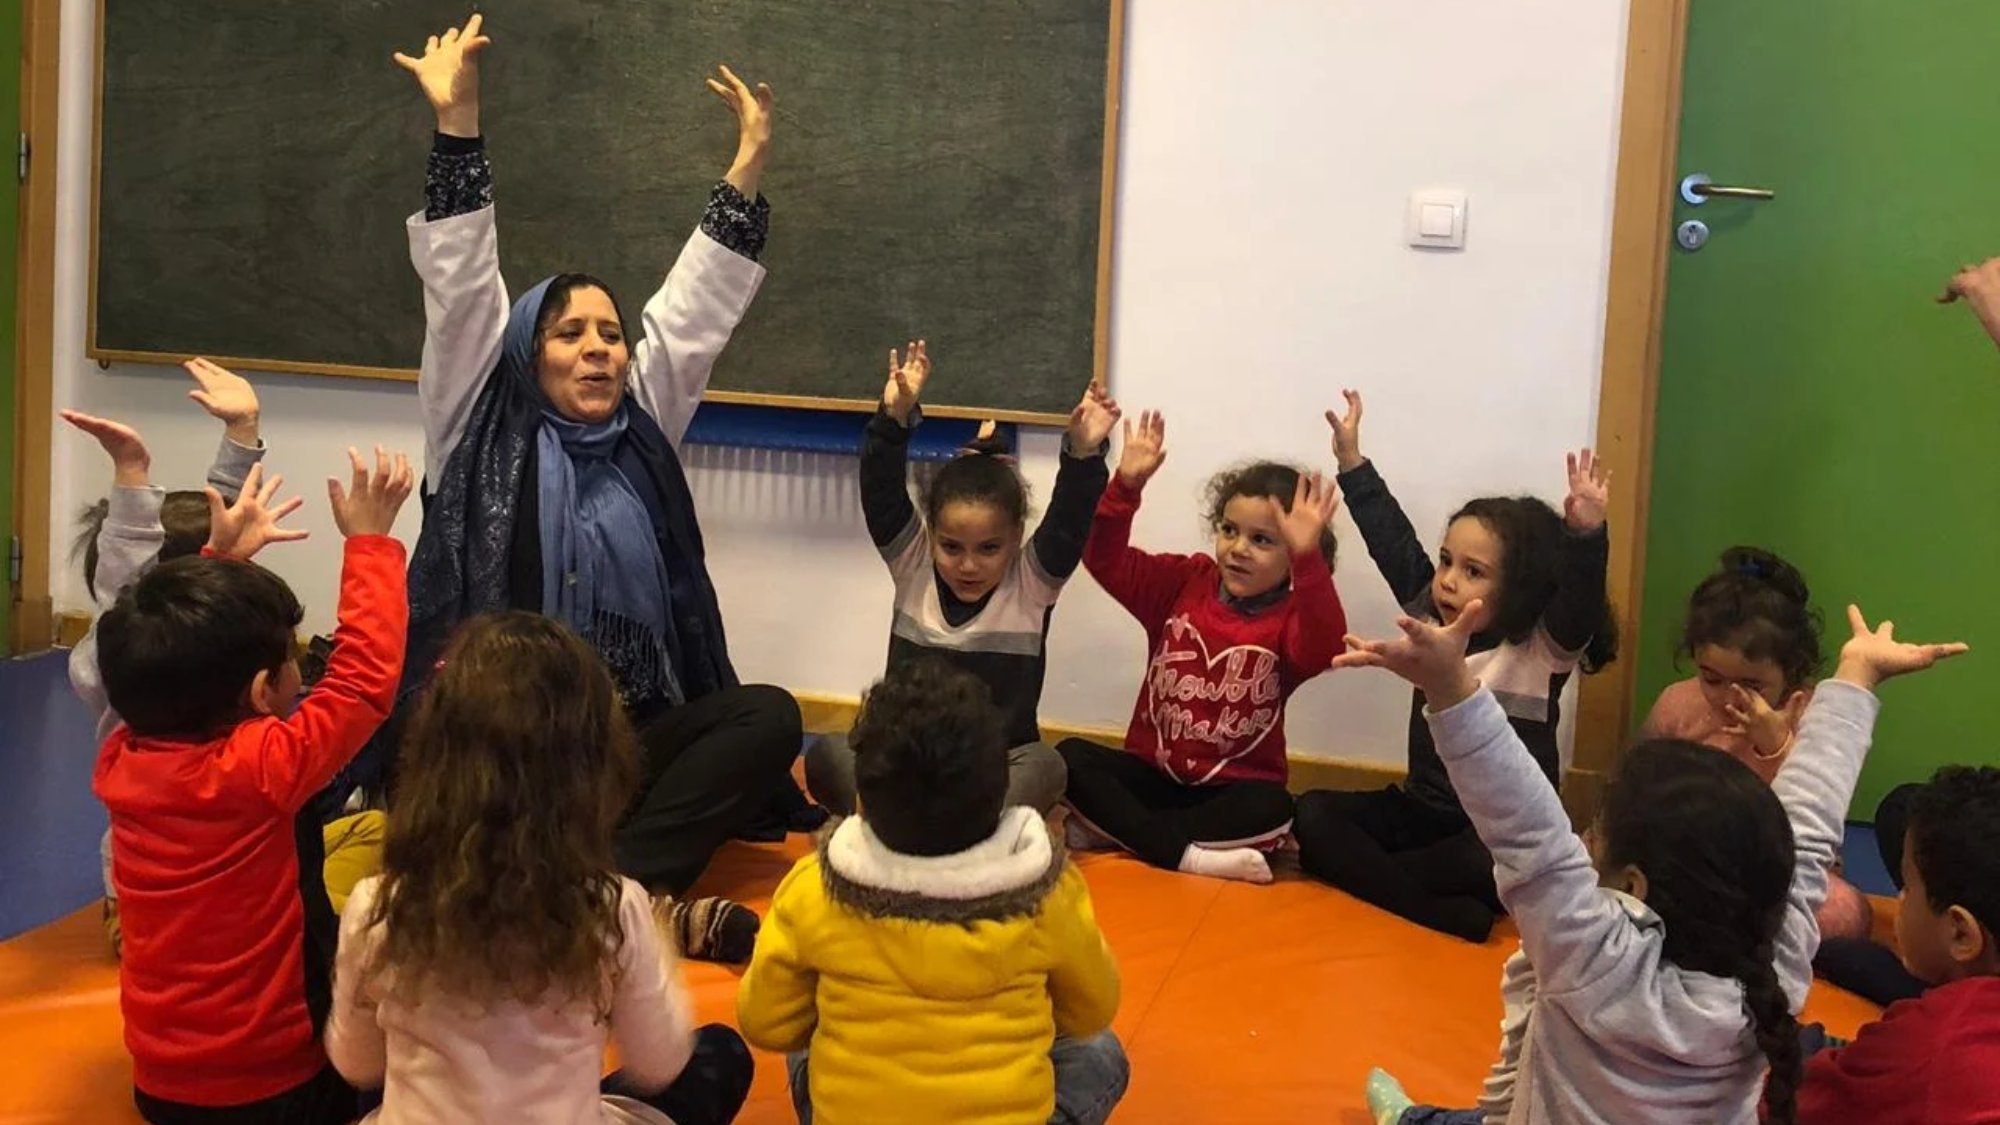 Children in a class learning through play